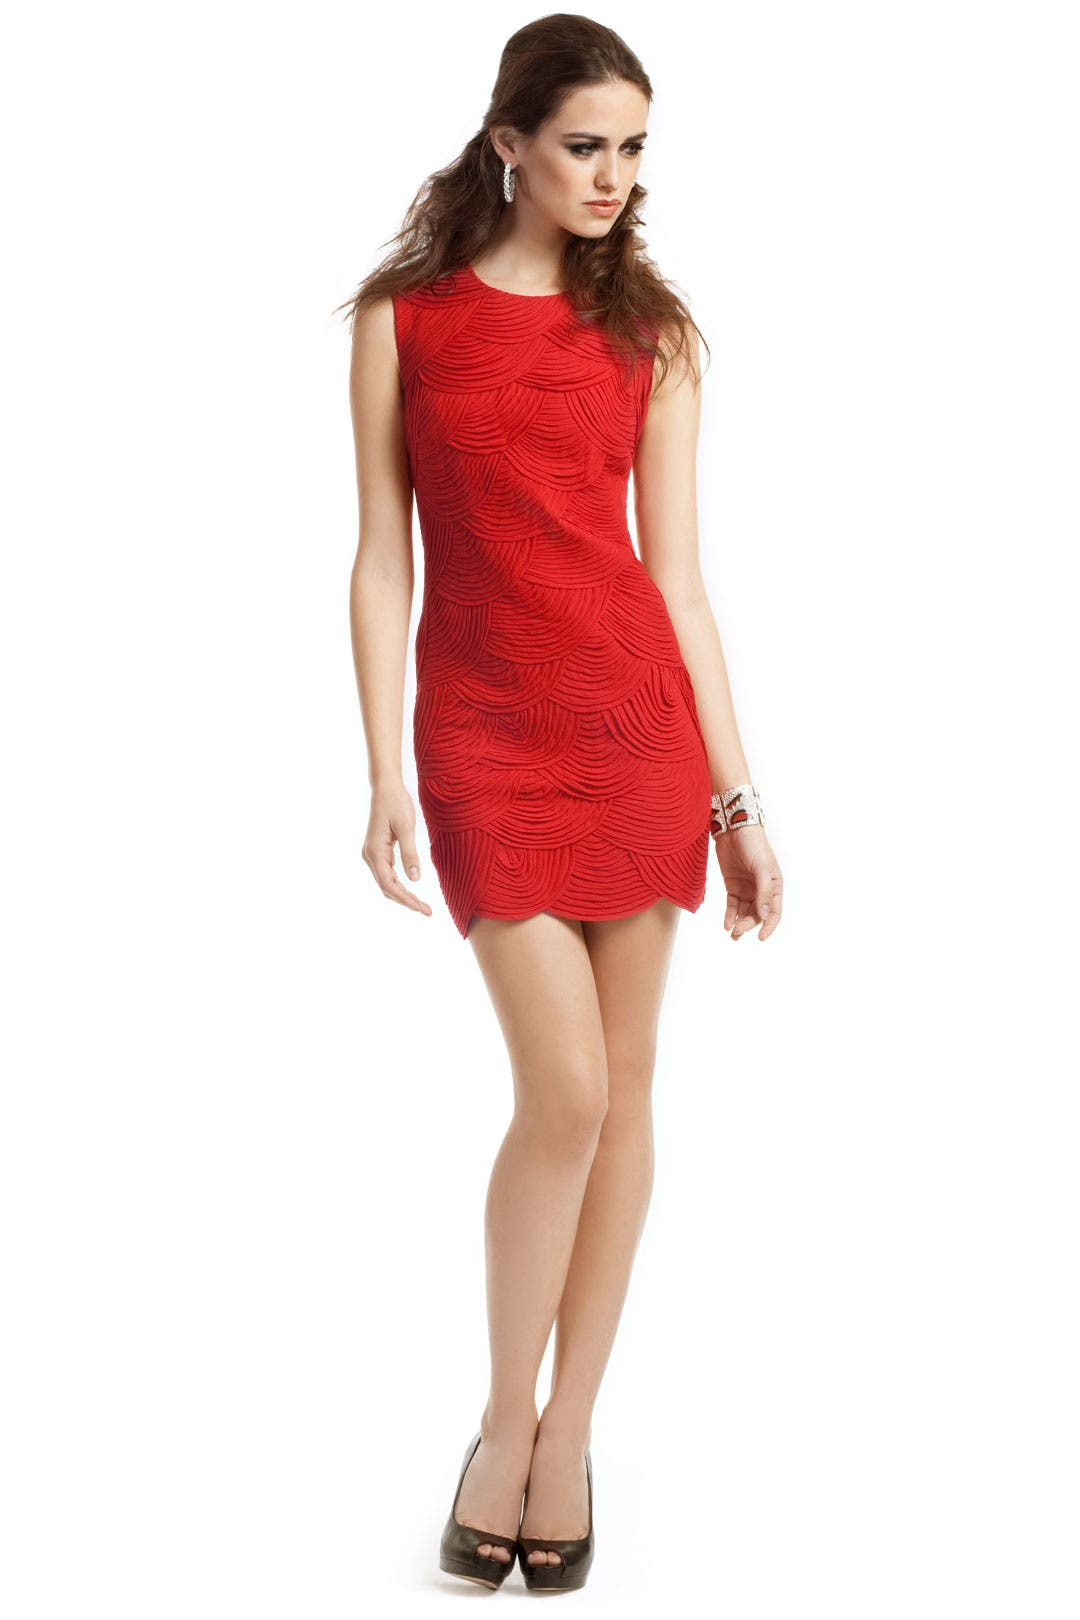 Crimson Scalloped Dress by Robert Rodriguez Collection